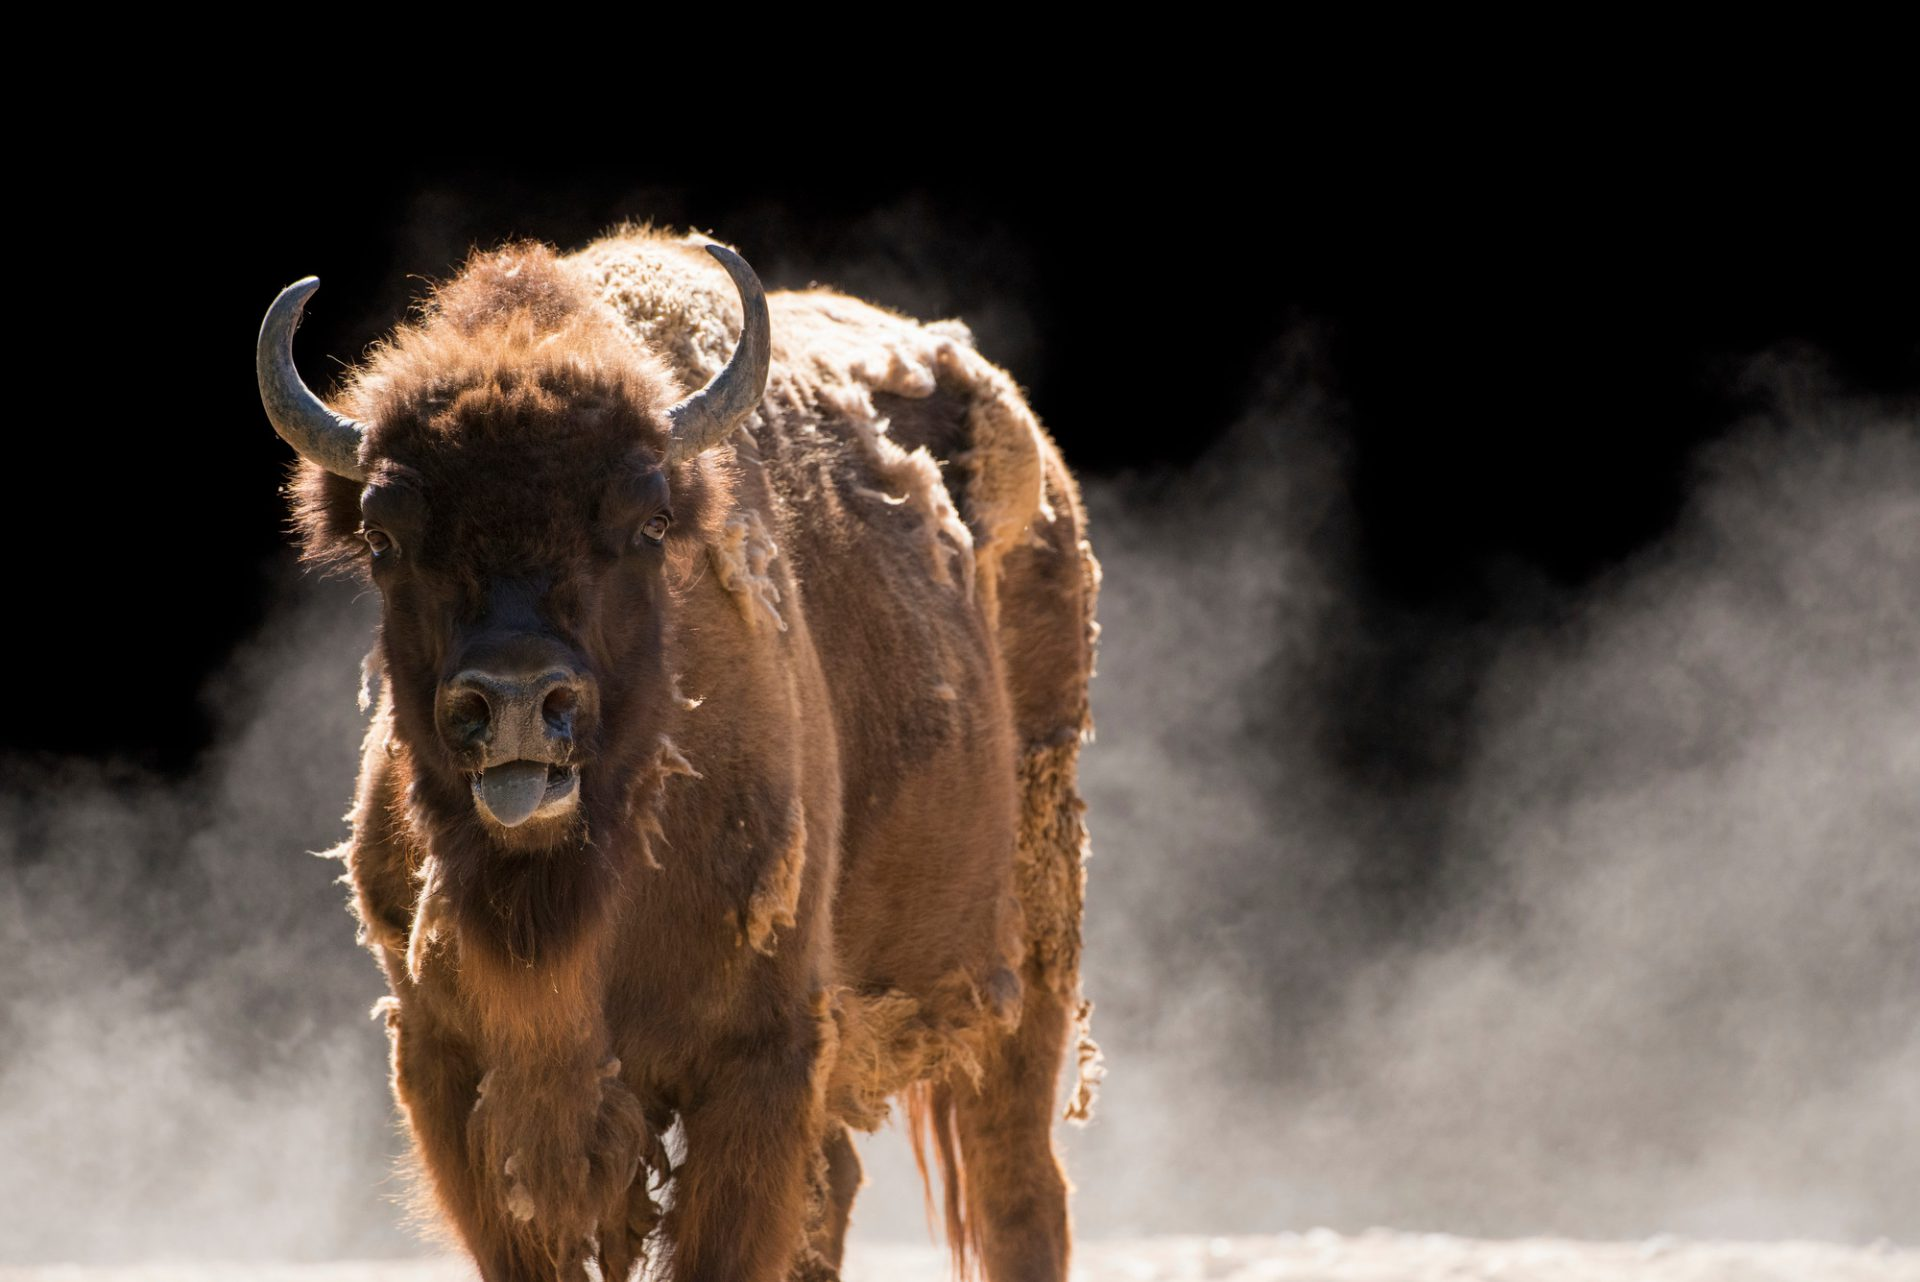 Photo: A vulnerable European wisent (Bison bonasus) at the Madrid Zoo.